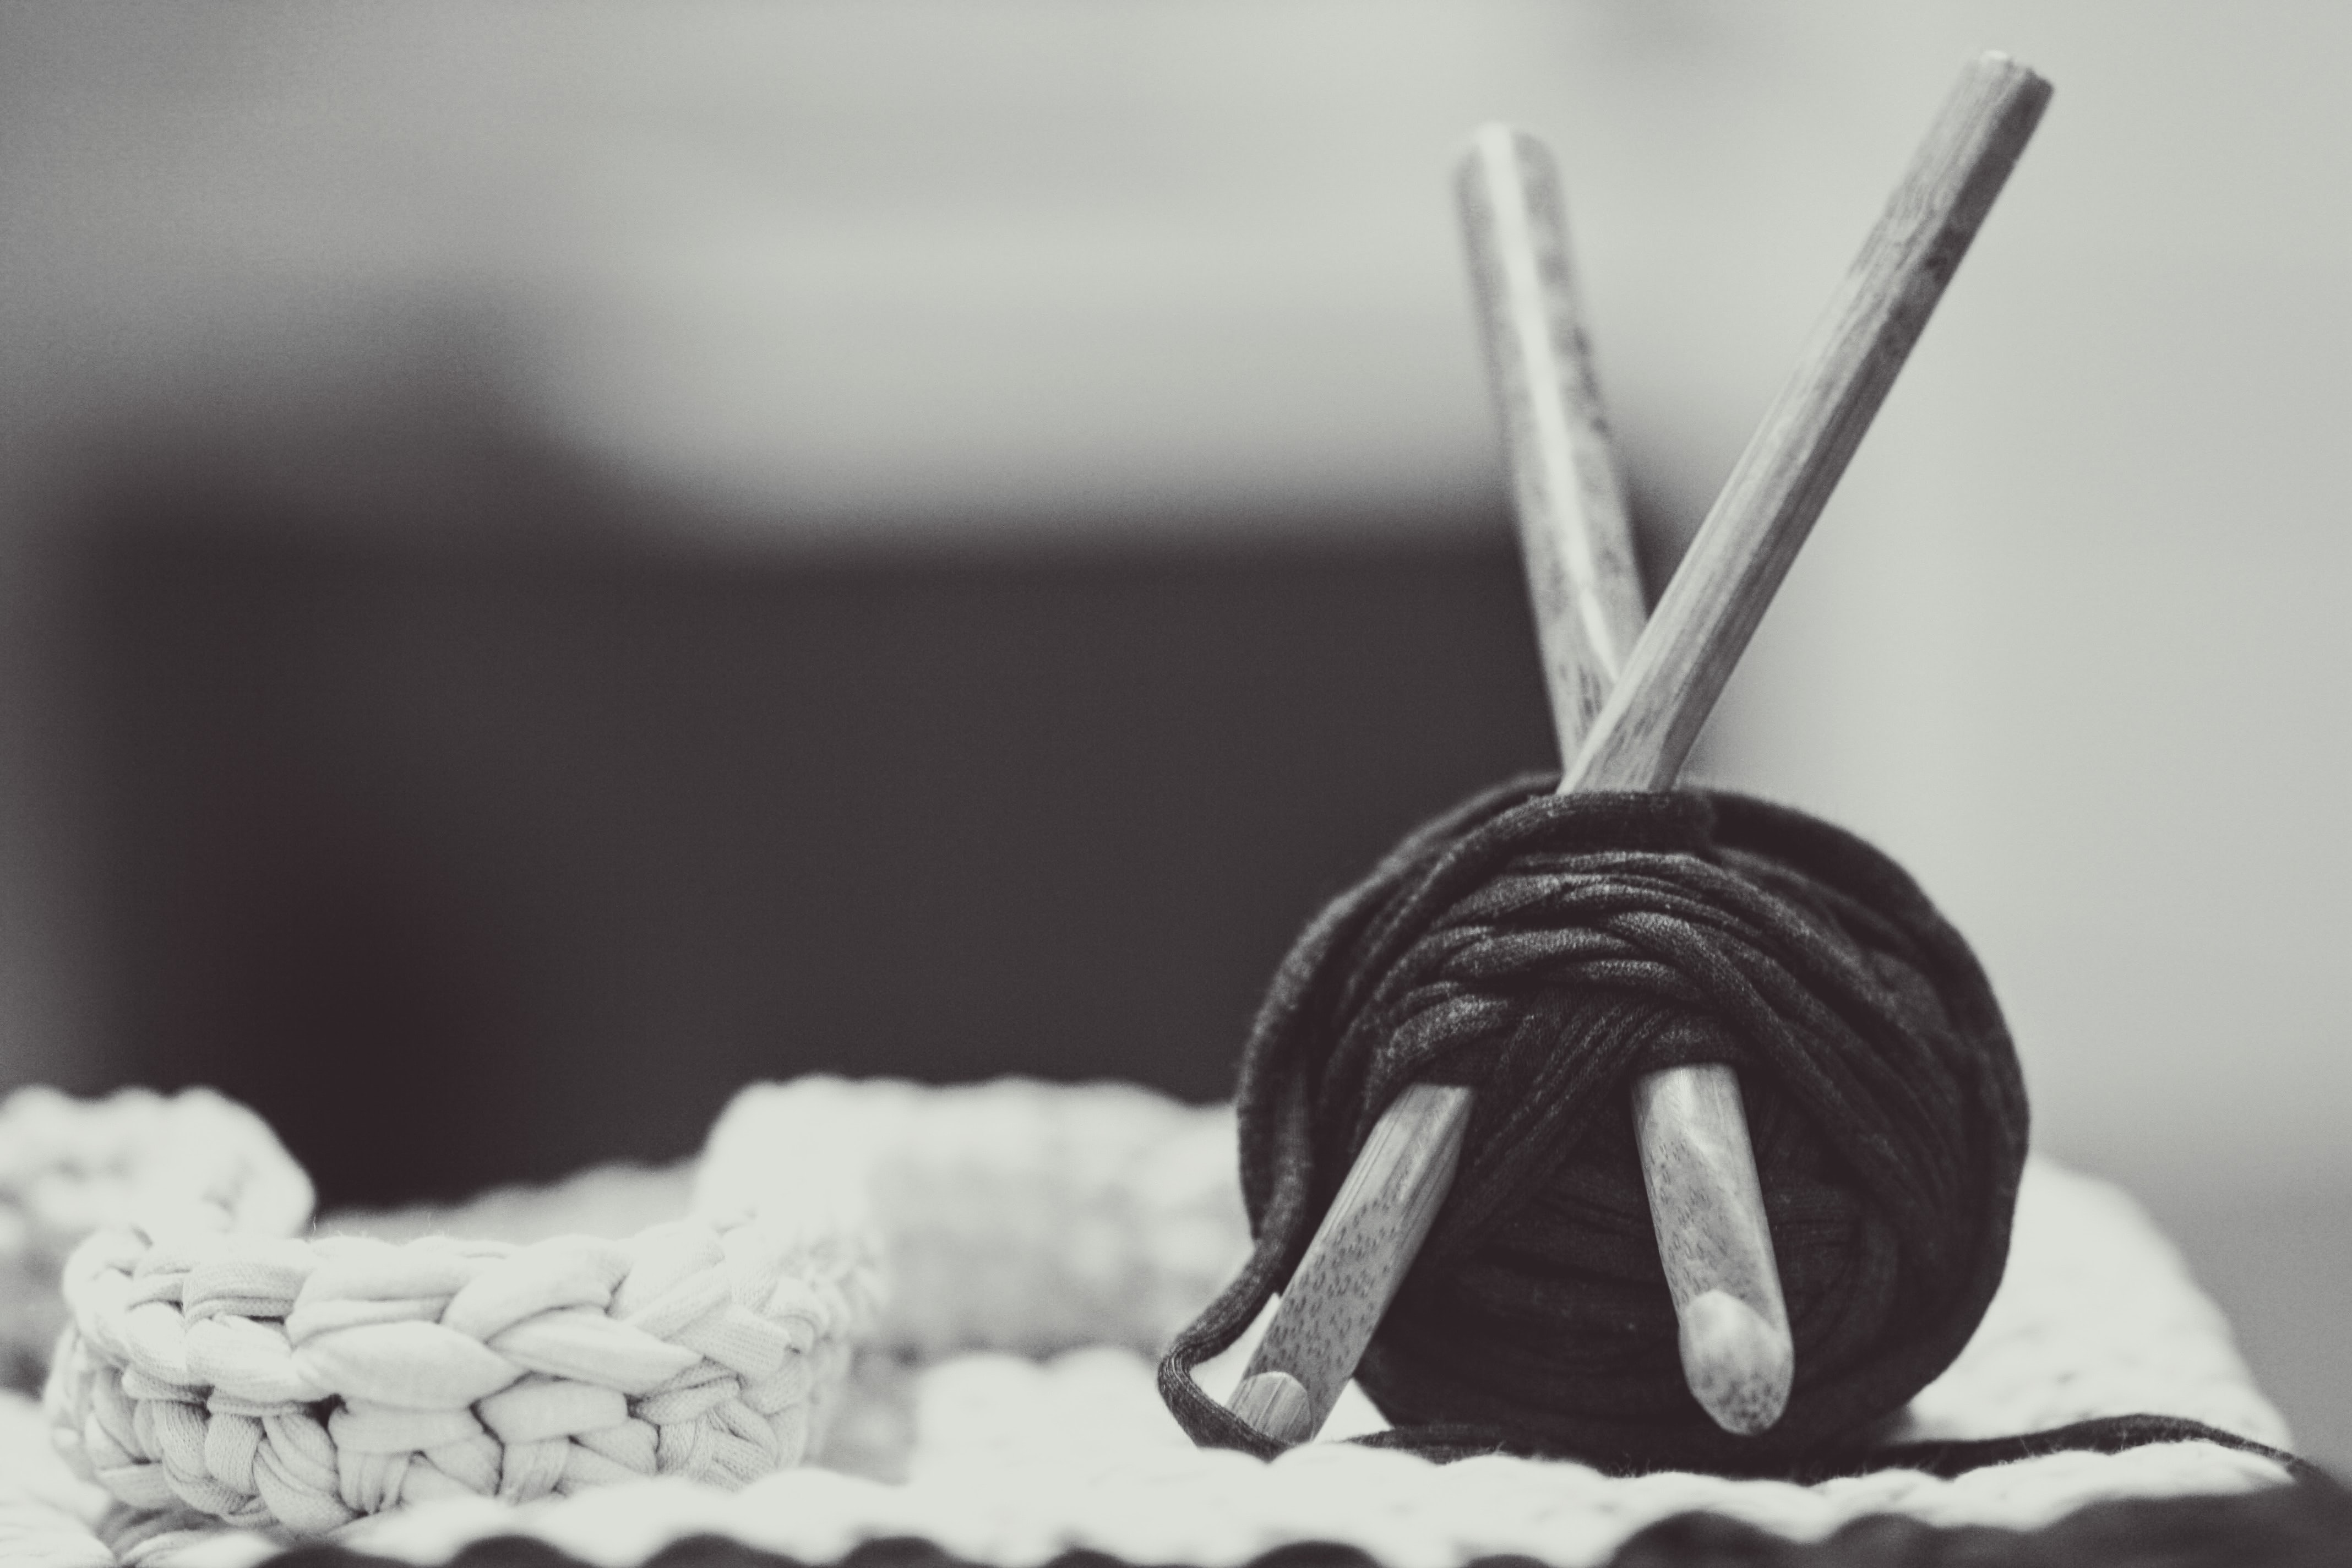 A black-and-white shot of yarn wrapped around crocheting hooks